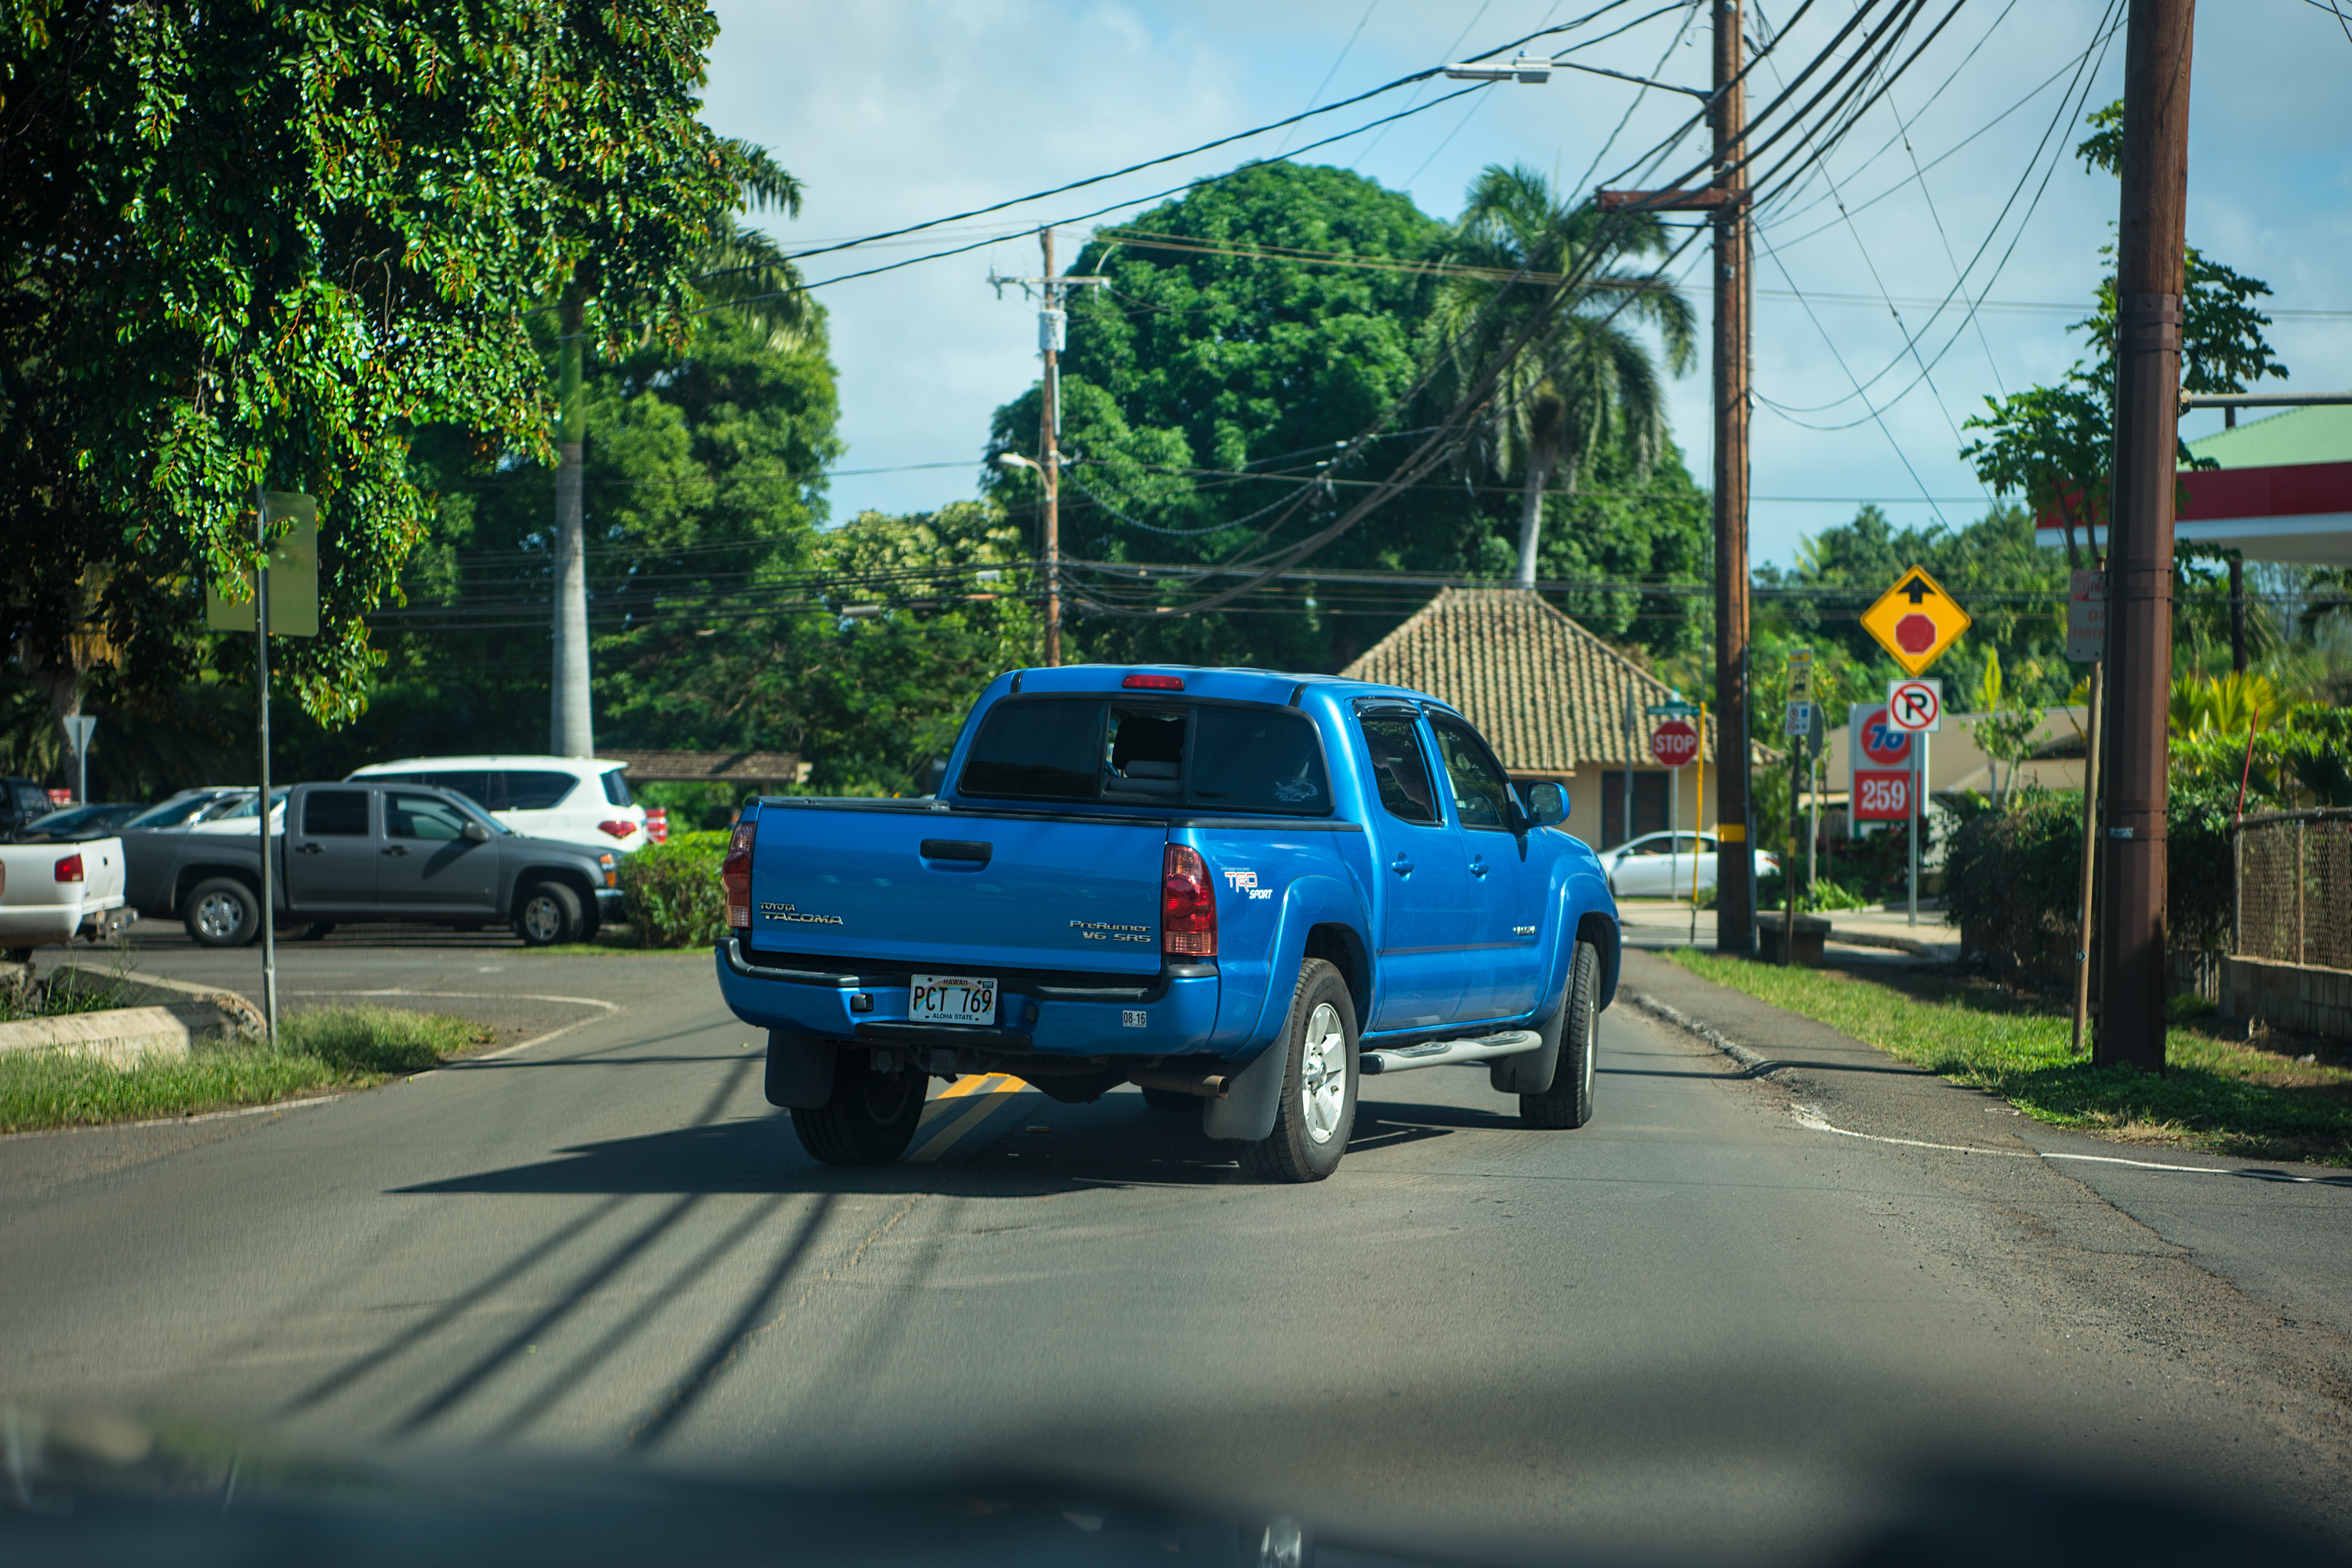 Scene of Haleiwa, Blue Pickup